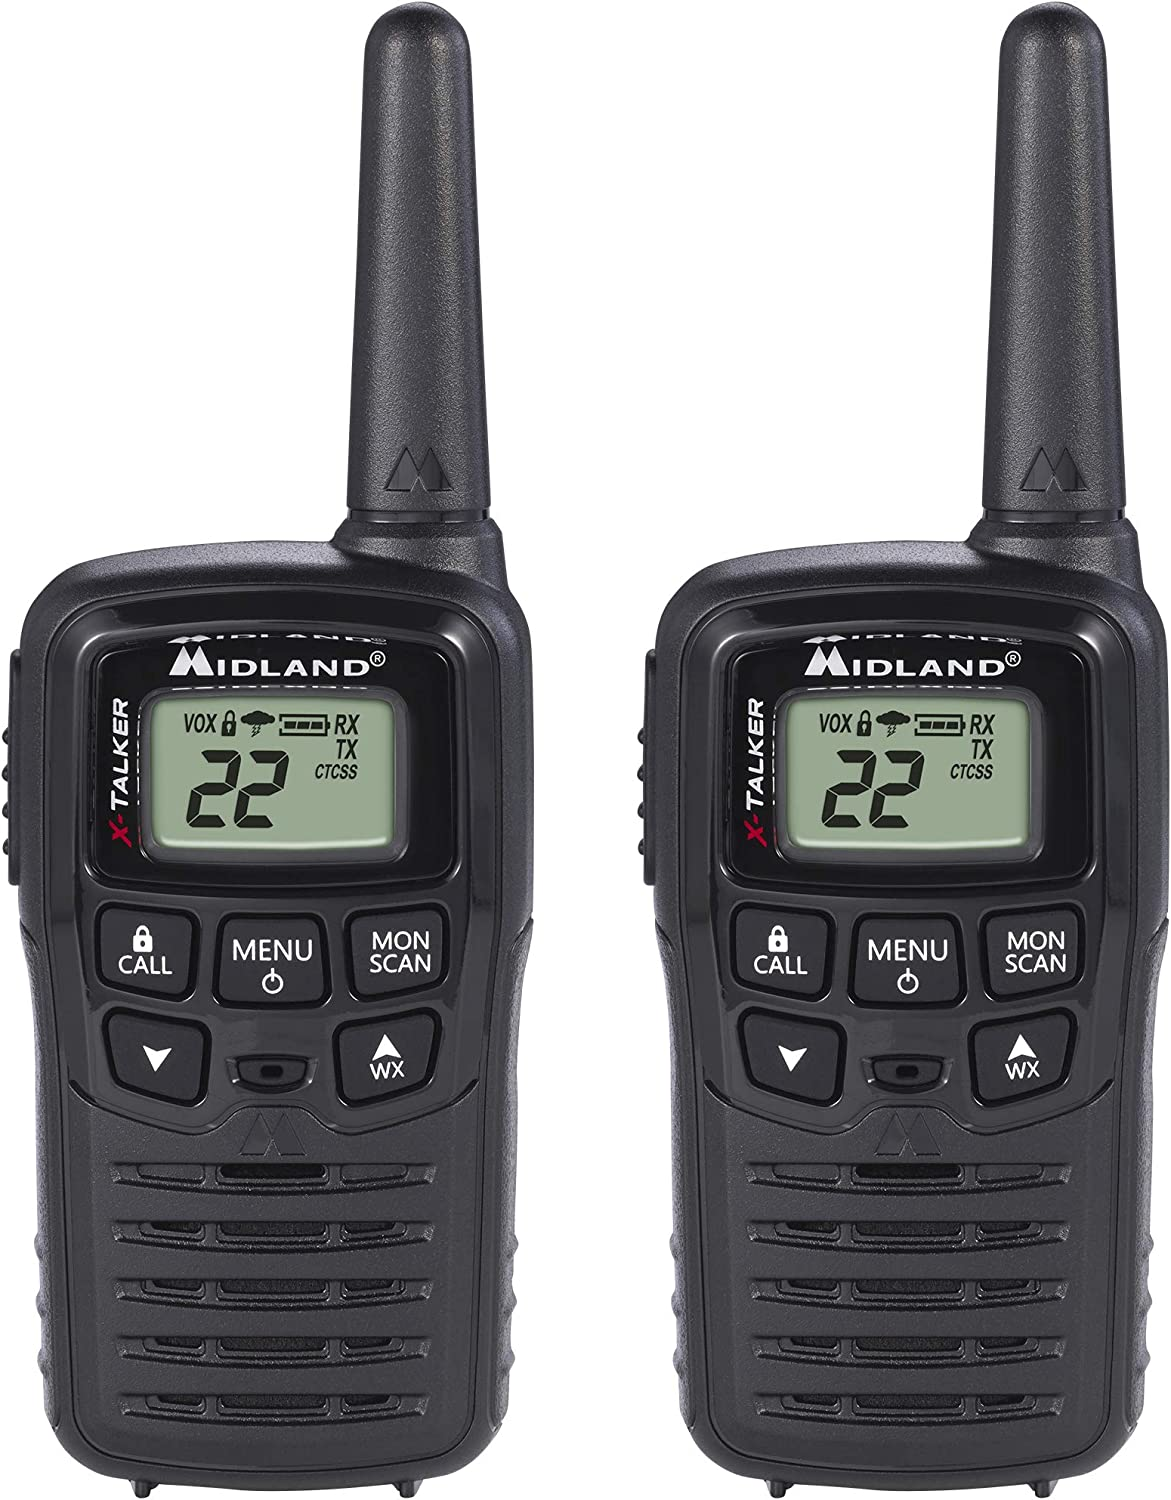 Walkie talkies for cruise